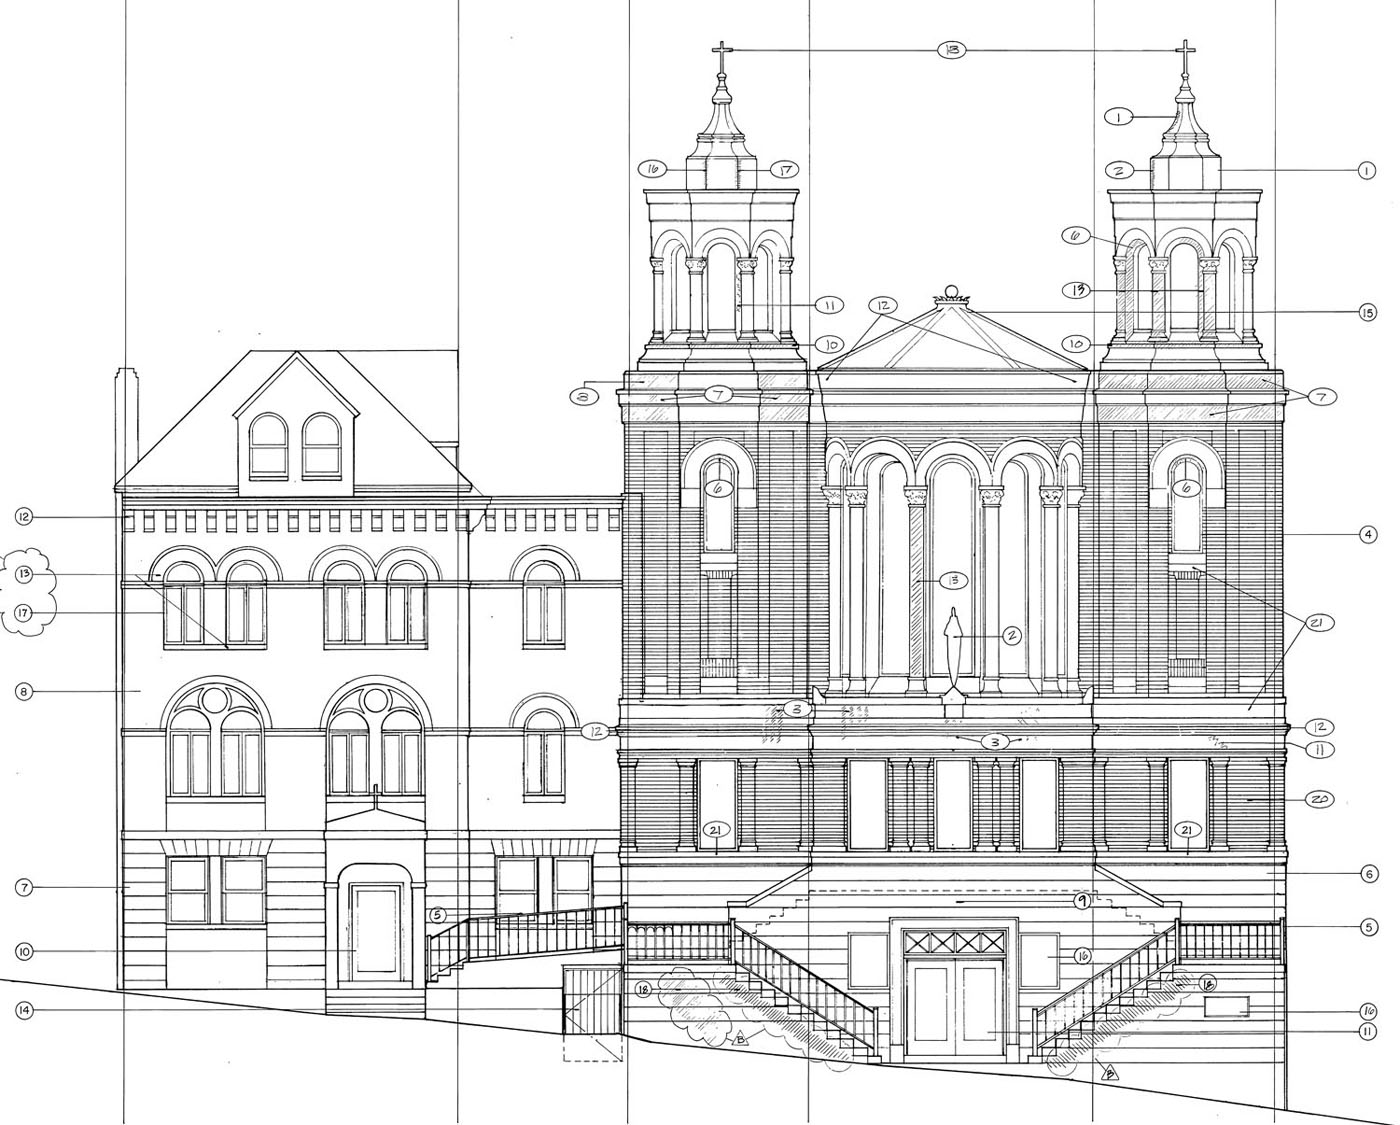 23 Exterior Elevation Drawings Is Mix Of Brilliant